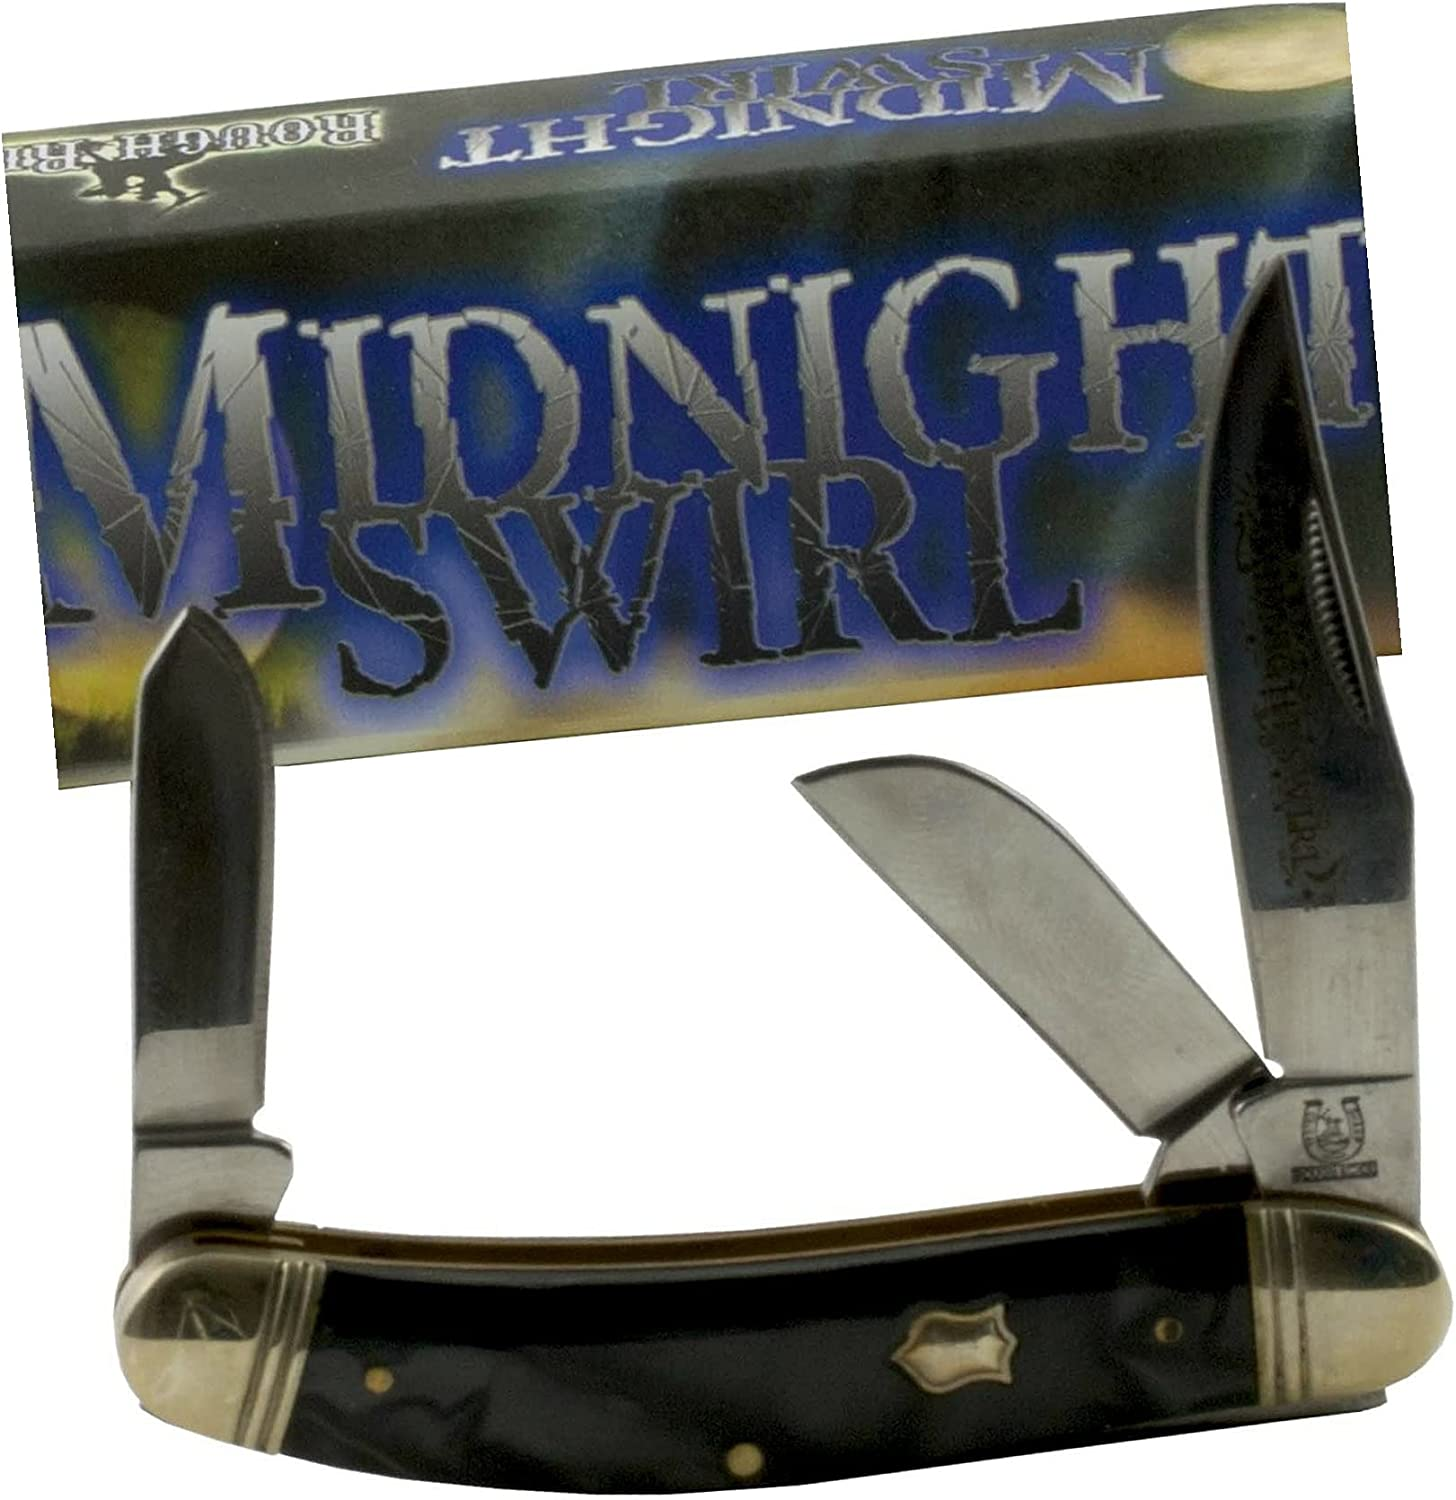 Midnight Swirl Stockman Pocket Knife Handles 3 In stock Stainle Blade 959 Sale special price